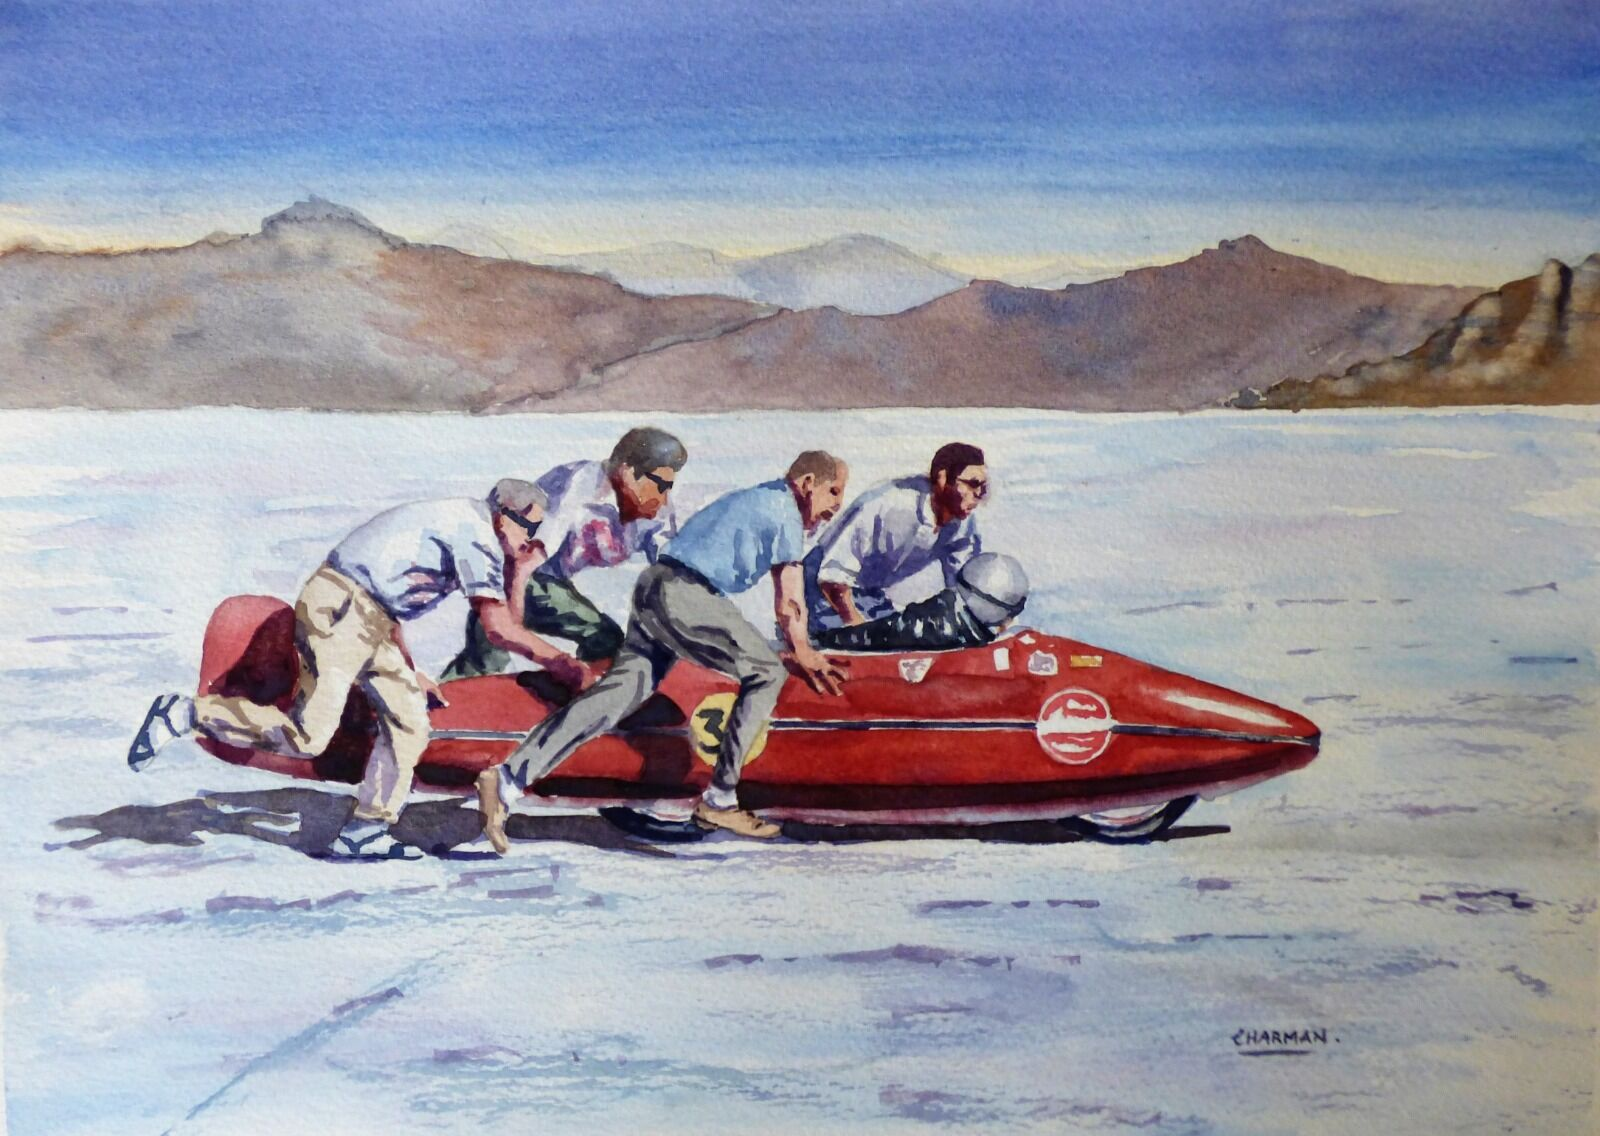 'Get Her Going Lads' - Bonneville Salt Flats